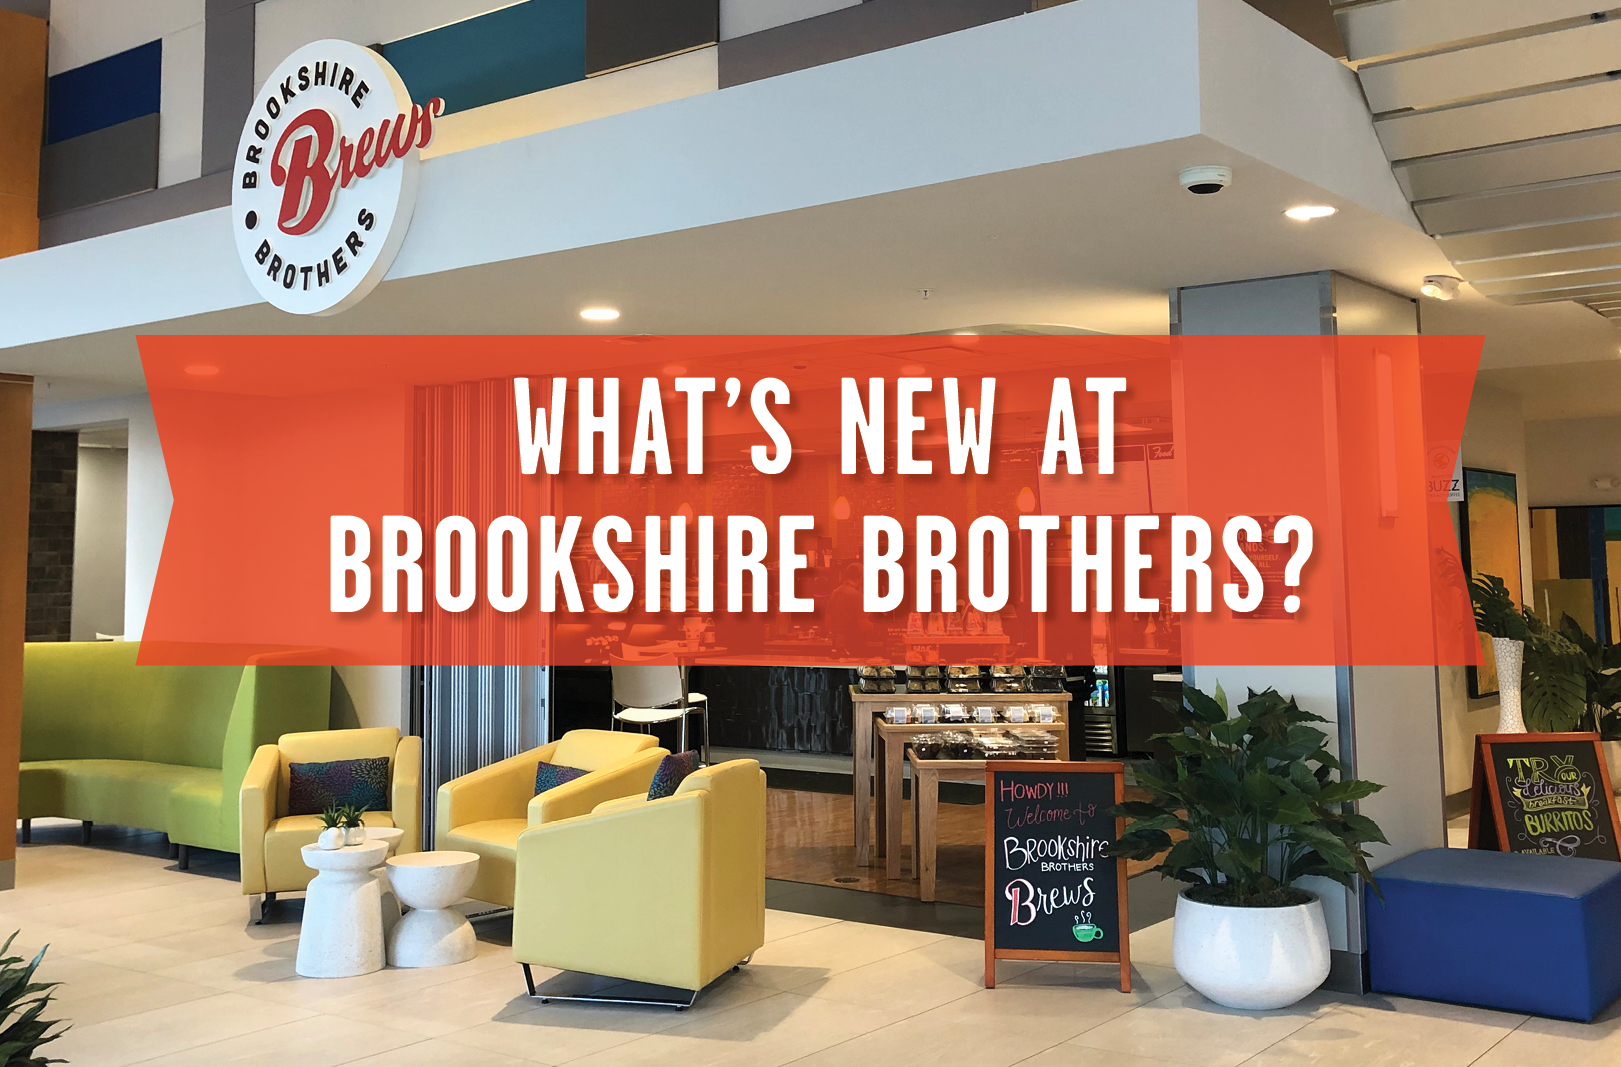 What's New At Bookshire Brothers